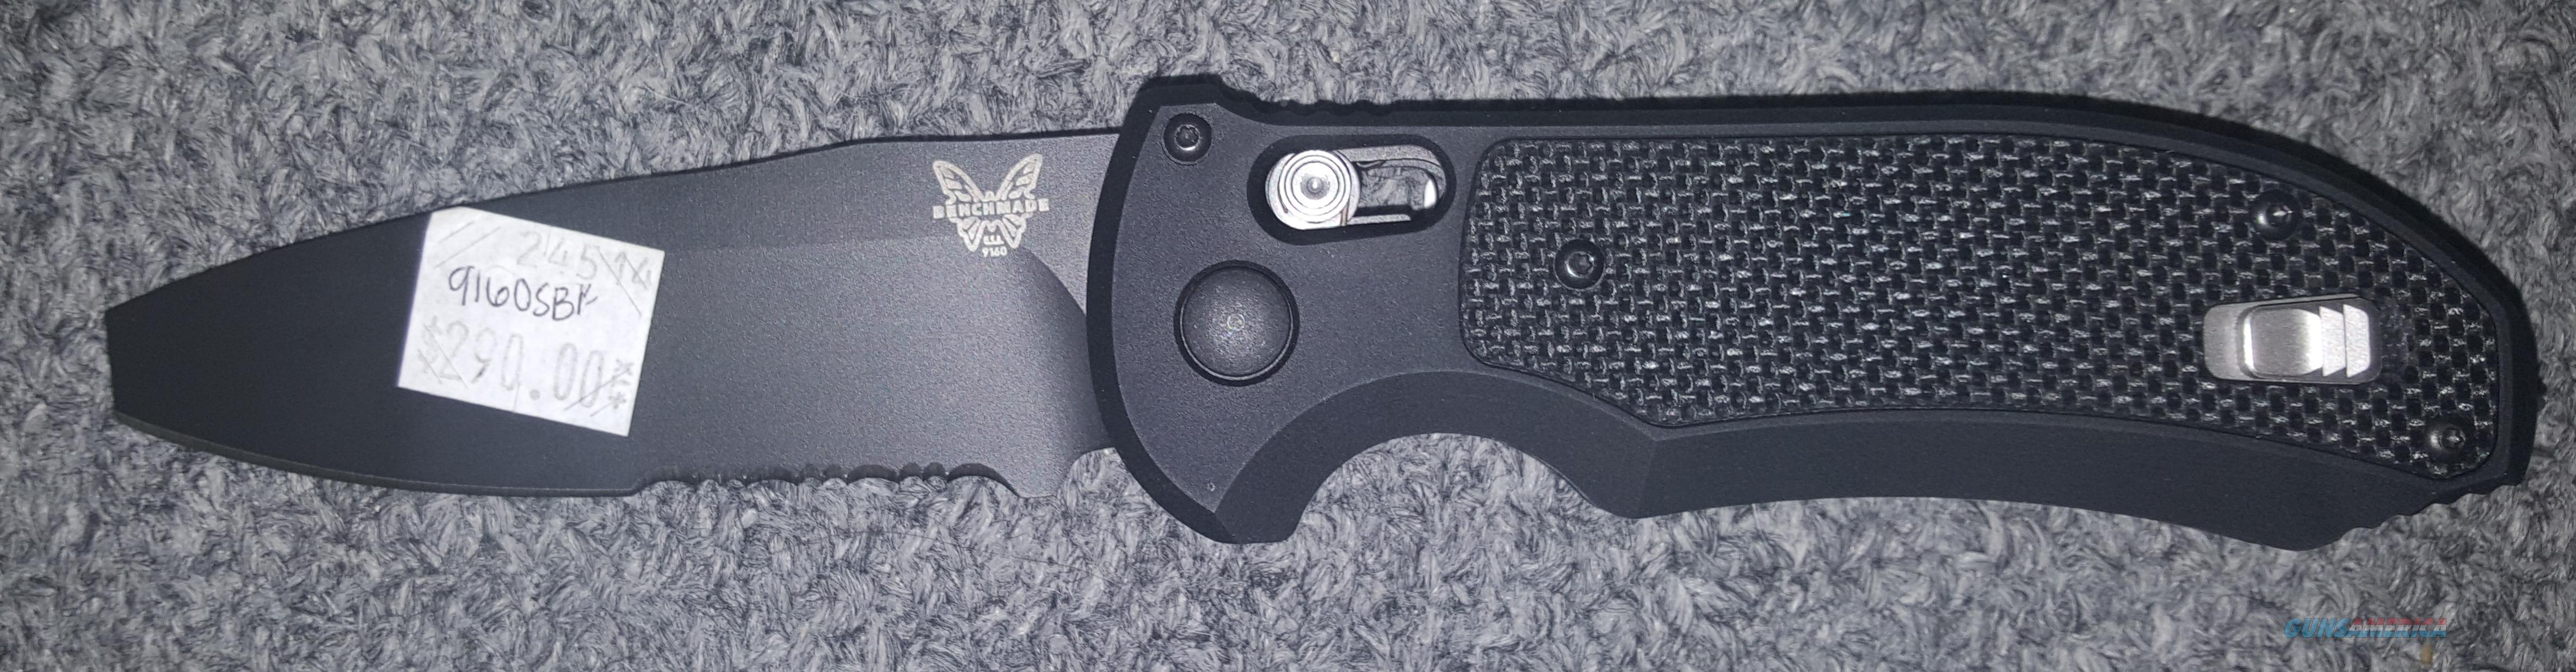 Benchmade 9160SBK Auto Triage  Non-Guns > Knives/Swords > Knives > Folding Blade > Hand Made